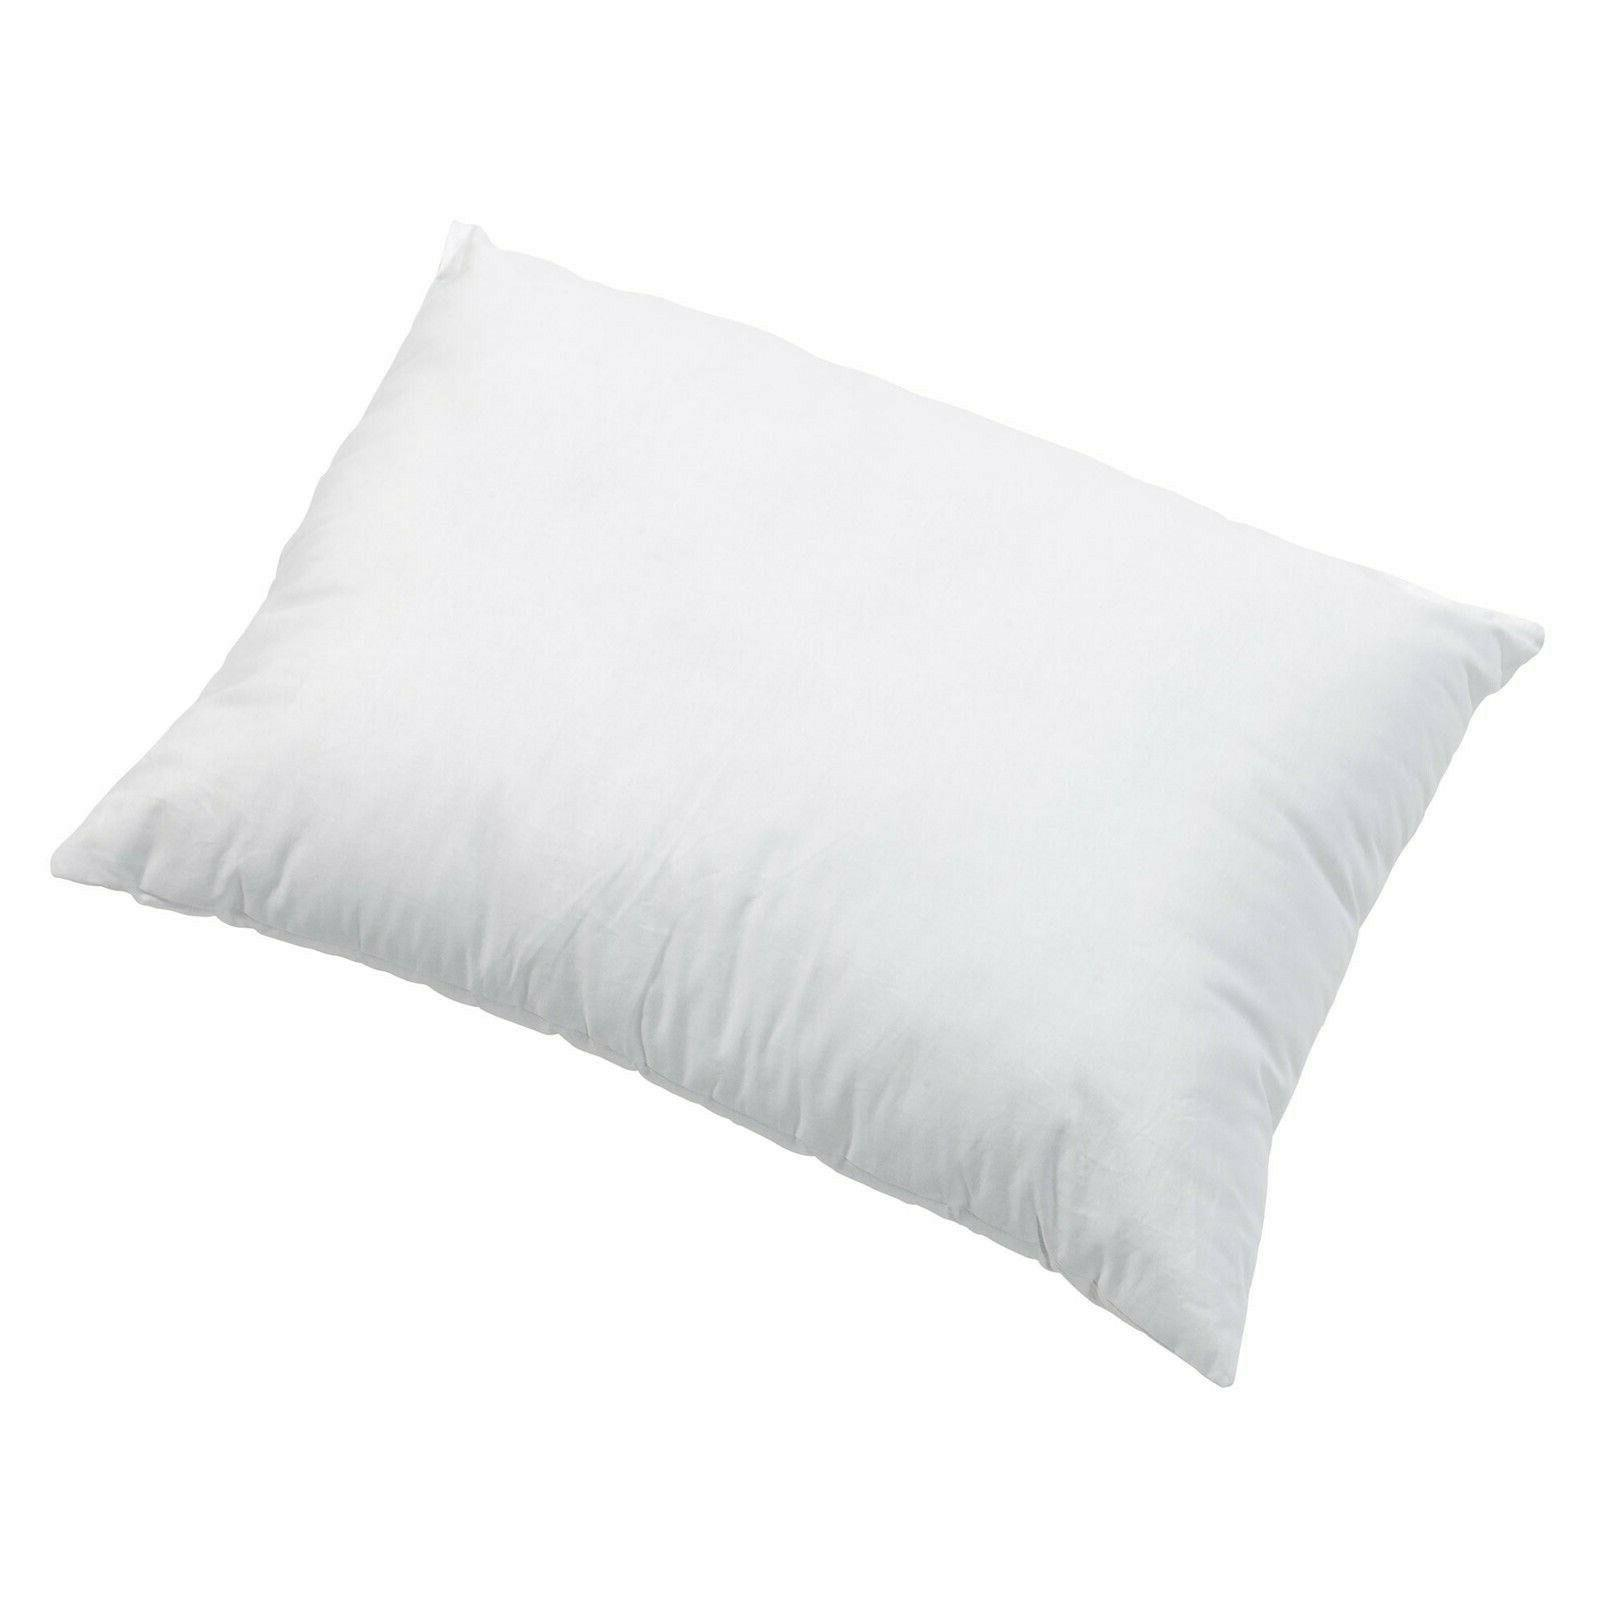 Ultra-Soft Down Sleeping King Inches